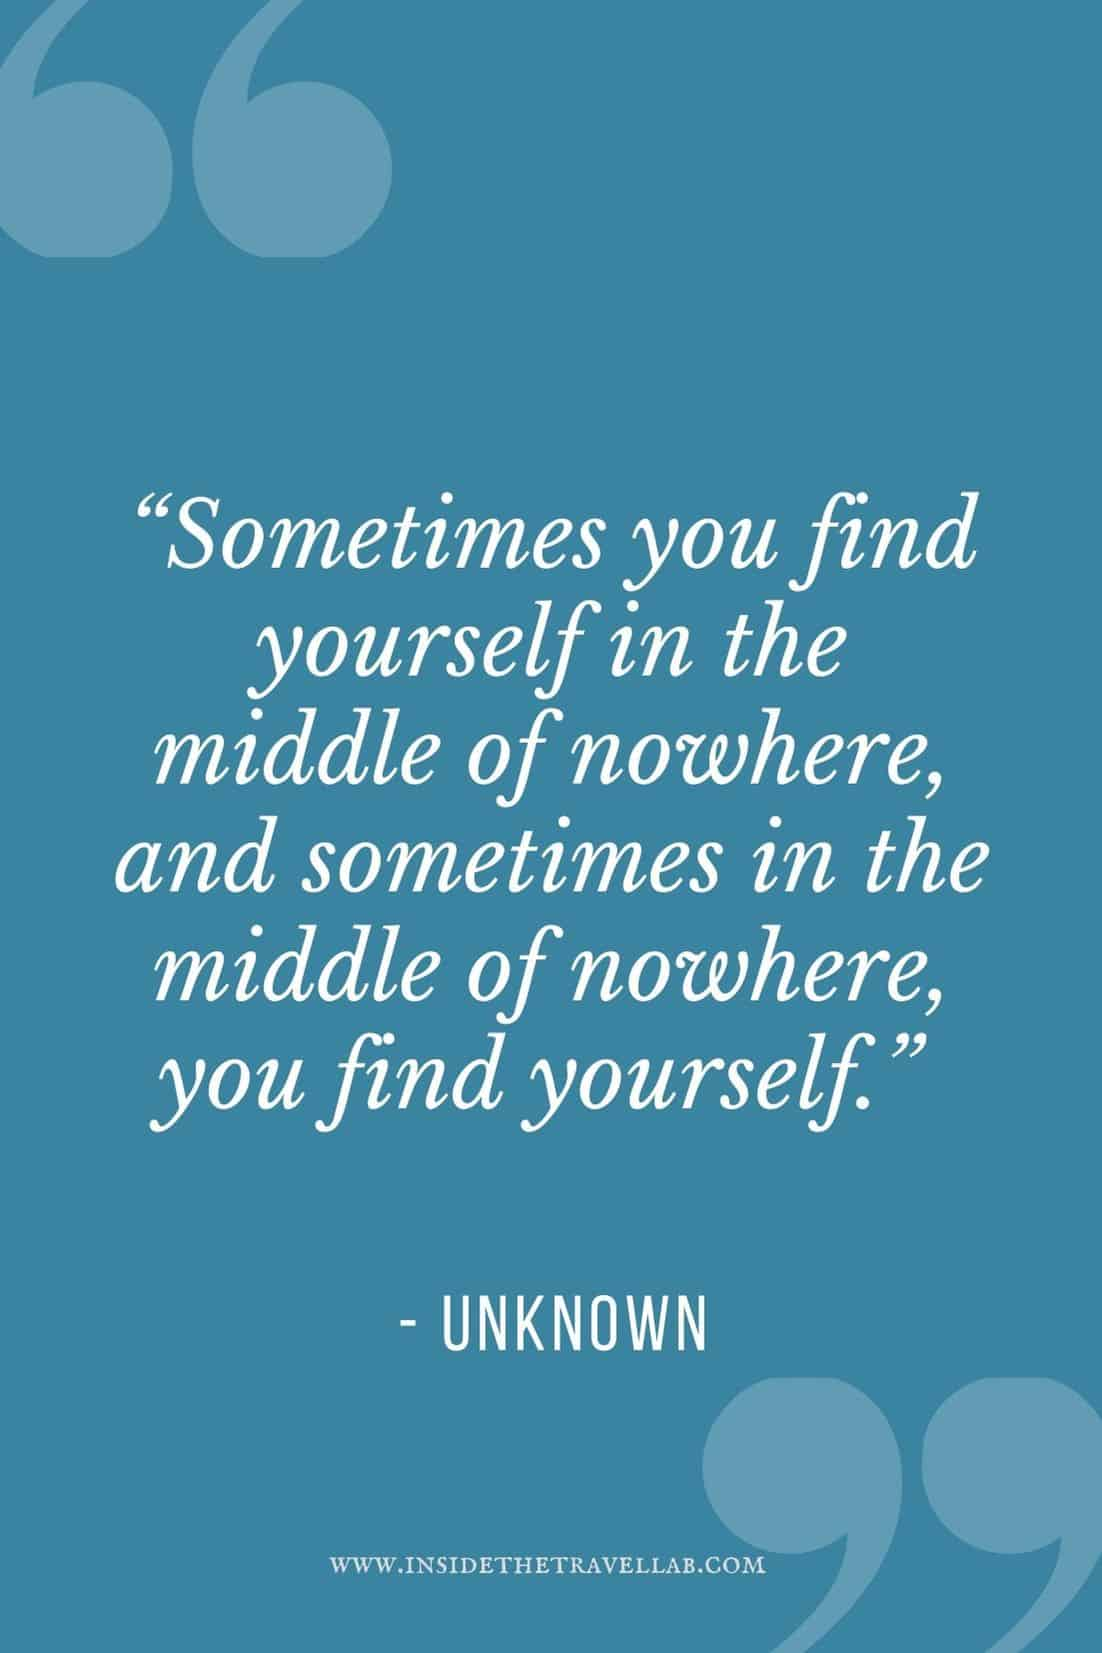 Sometimes you find yourself in the middle of nowhere travel quote